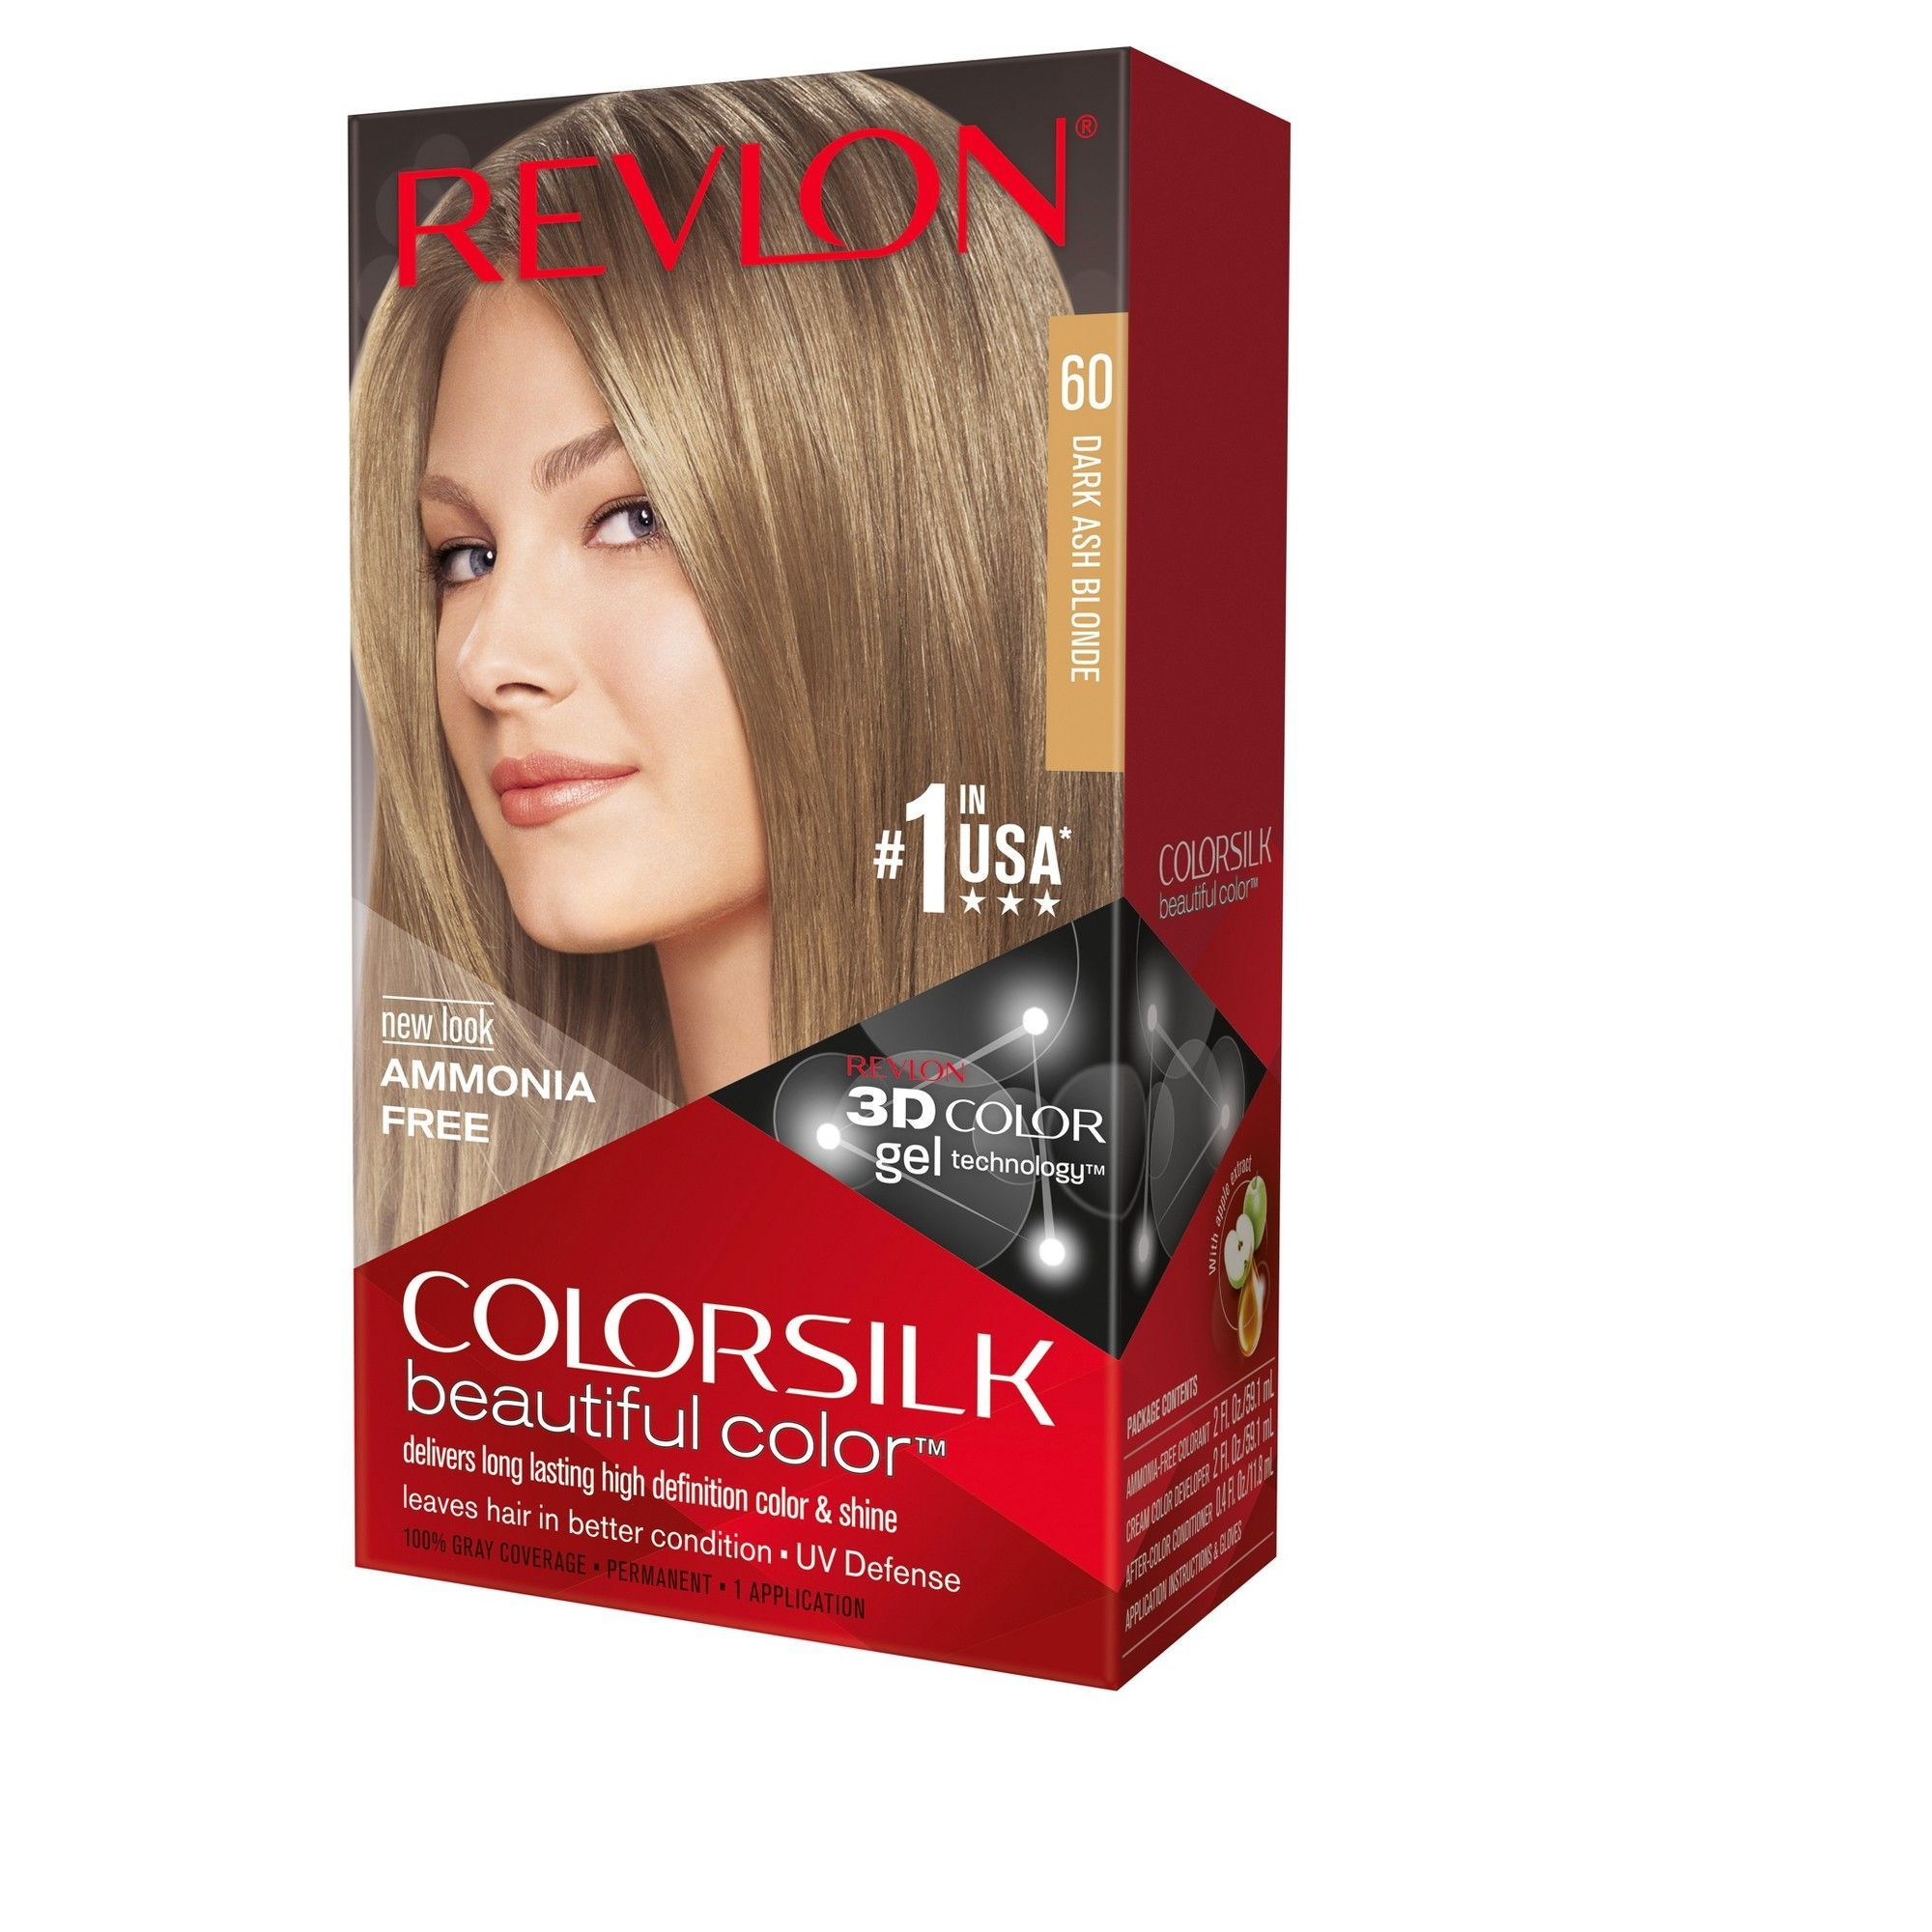 Revlon Colorsilk Beautiful Permanent Hair Color Dark Ash Blonde